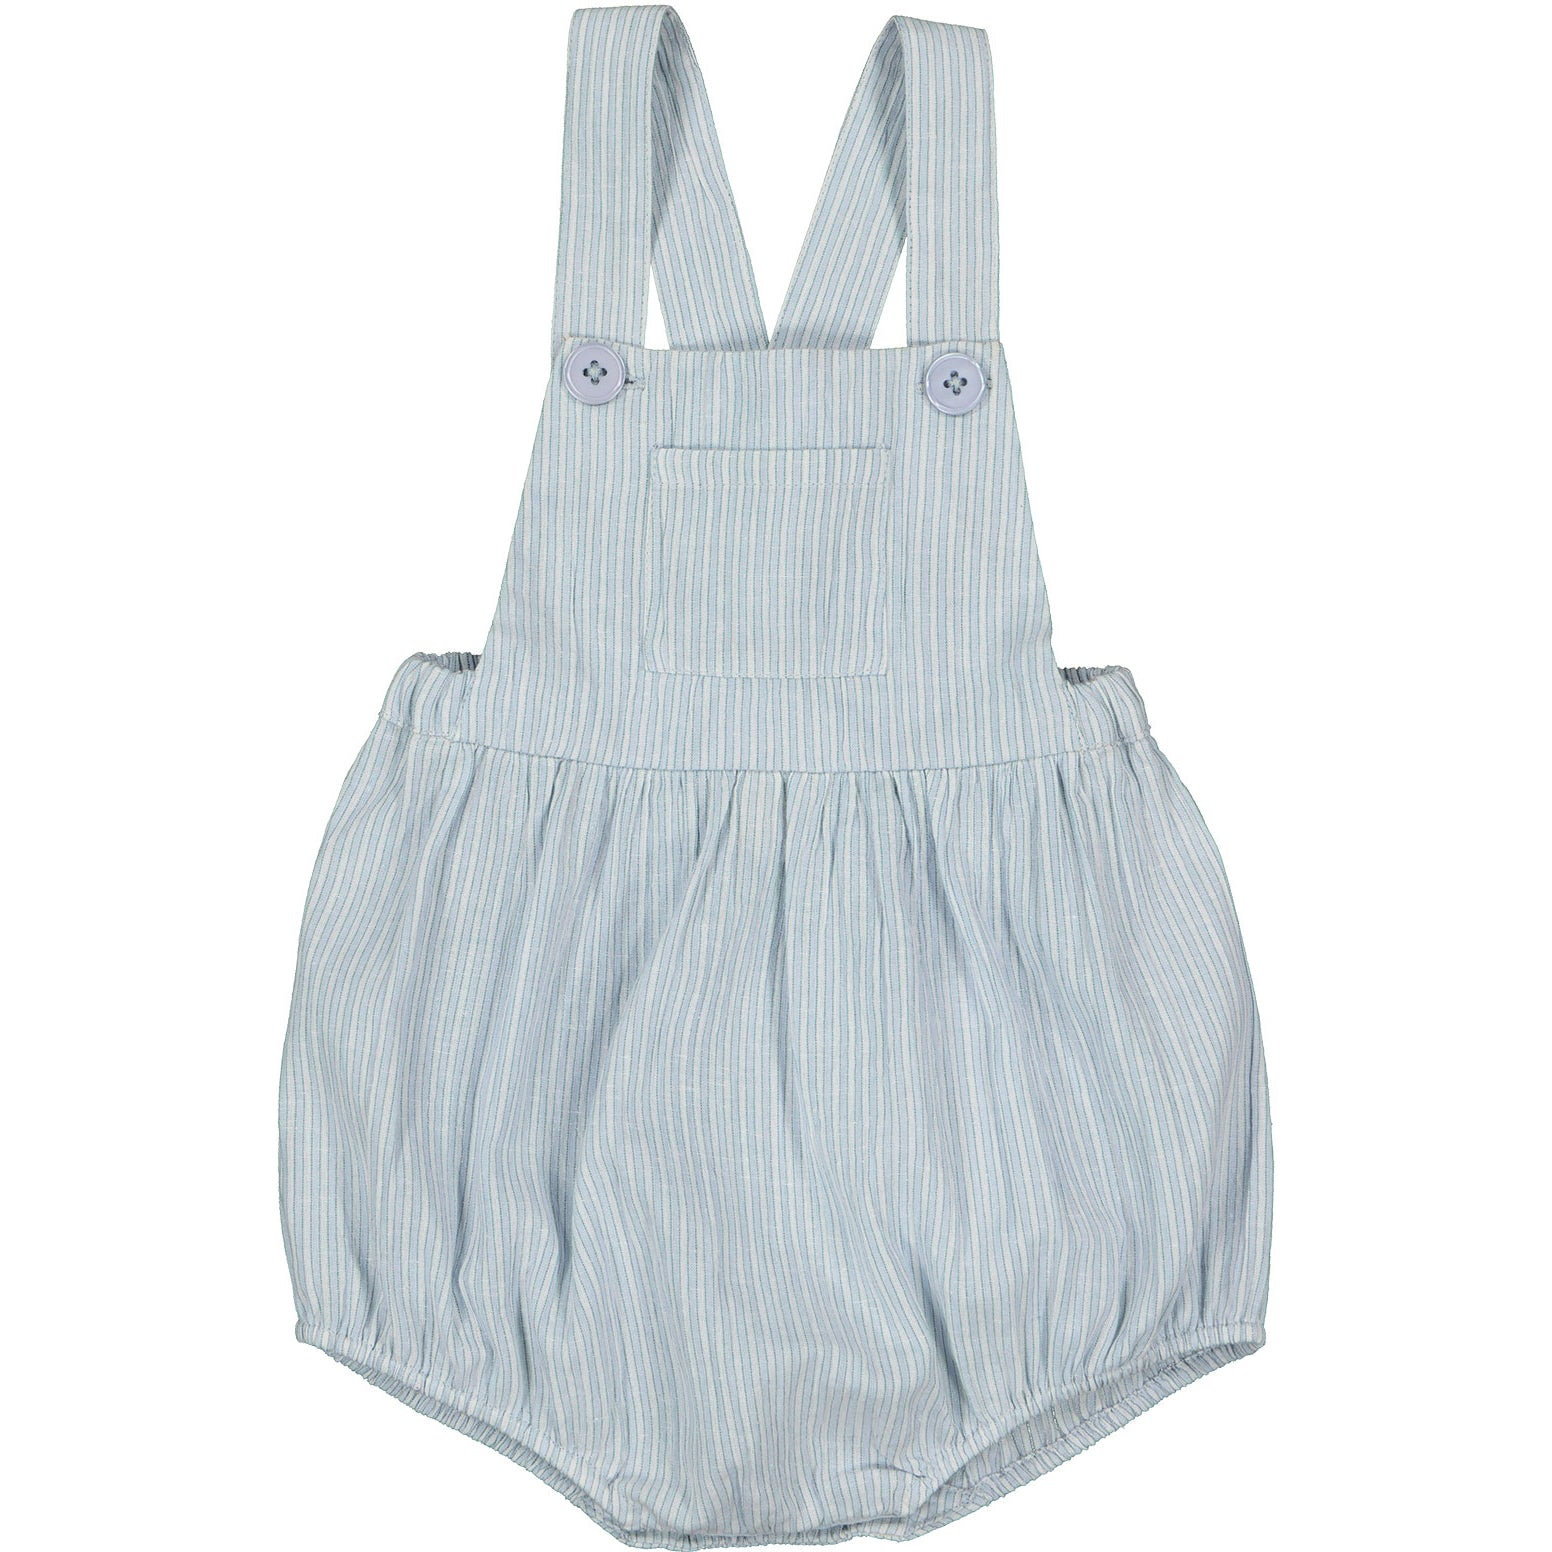 yoya, kids, baby, boys, louis louise, summer, casual, chambray, tank top, overall, romper, outfit